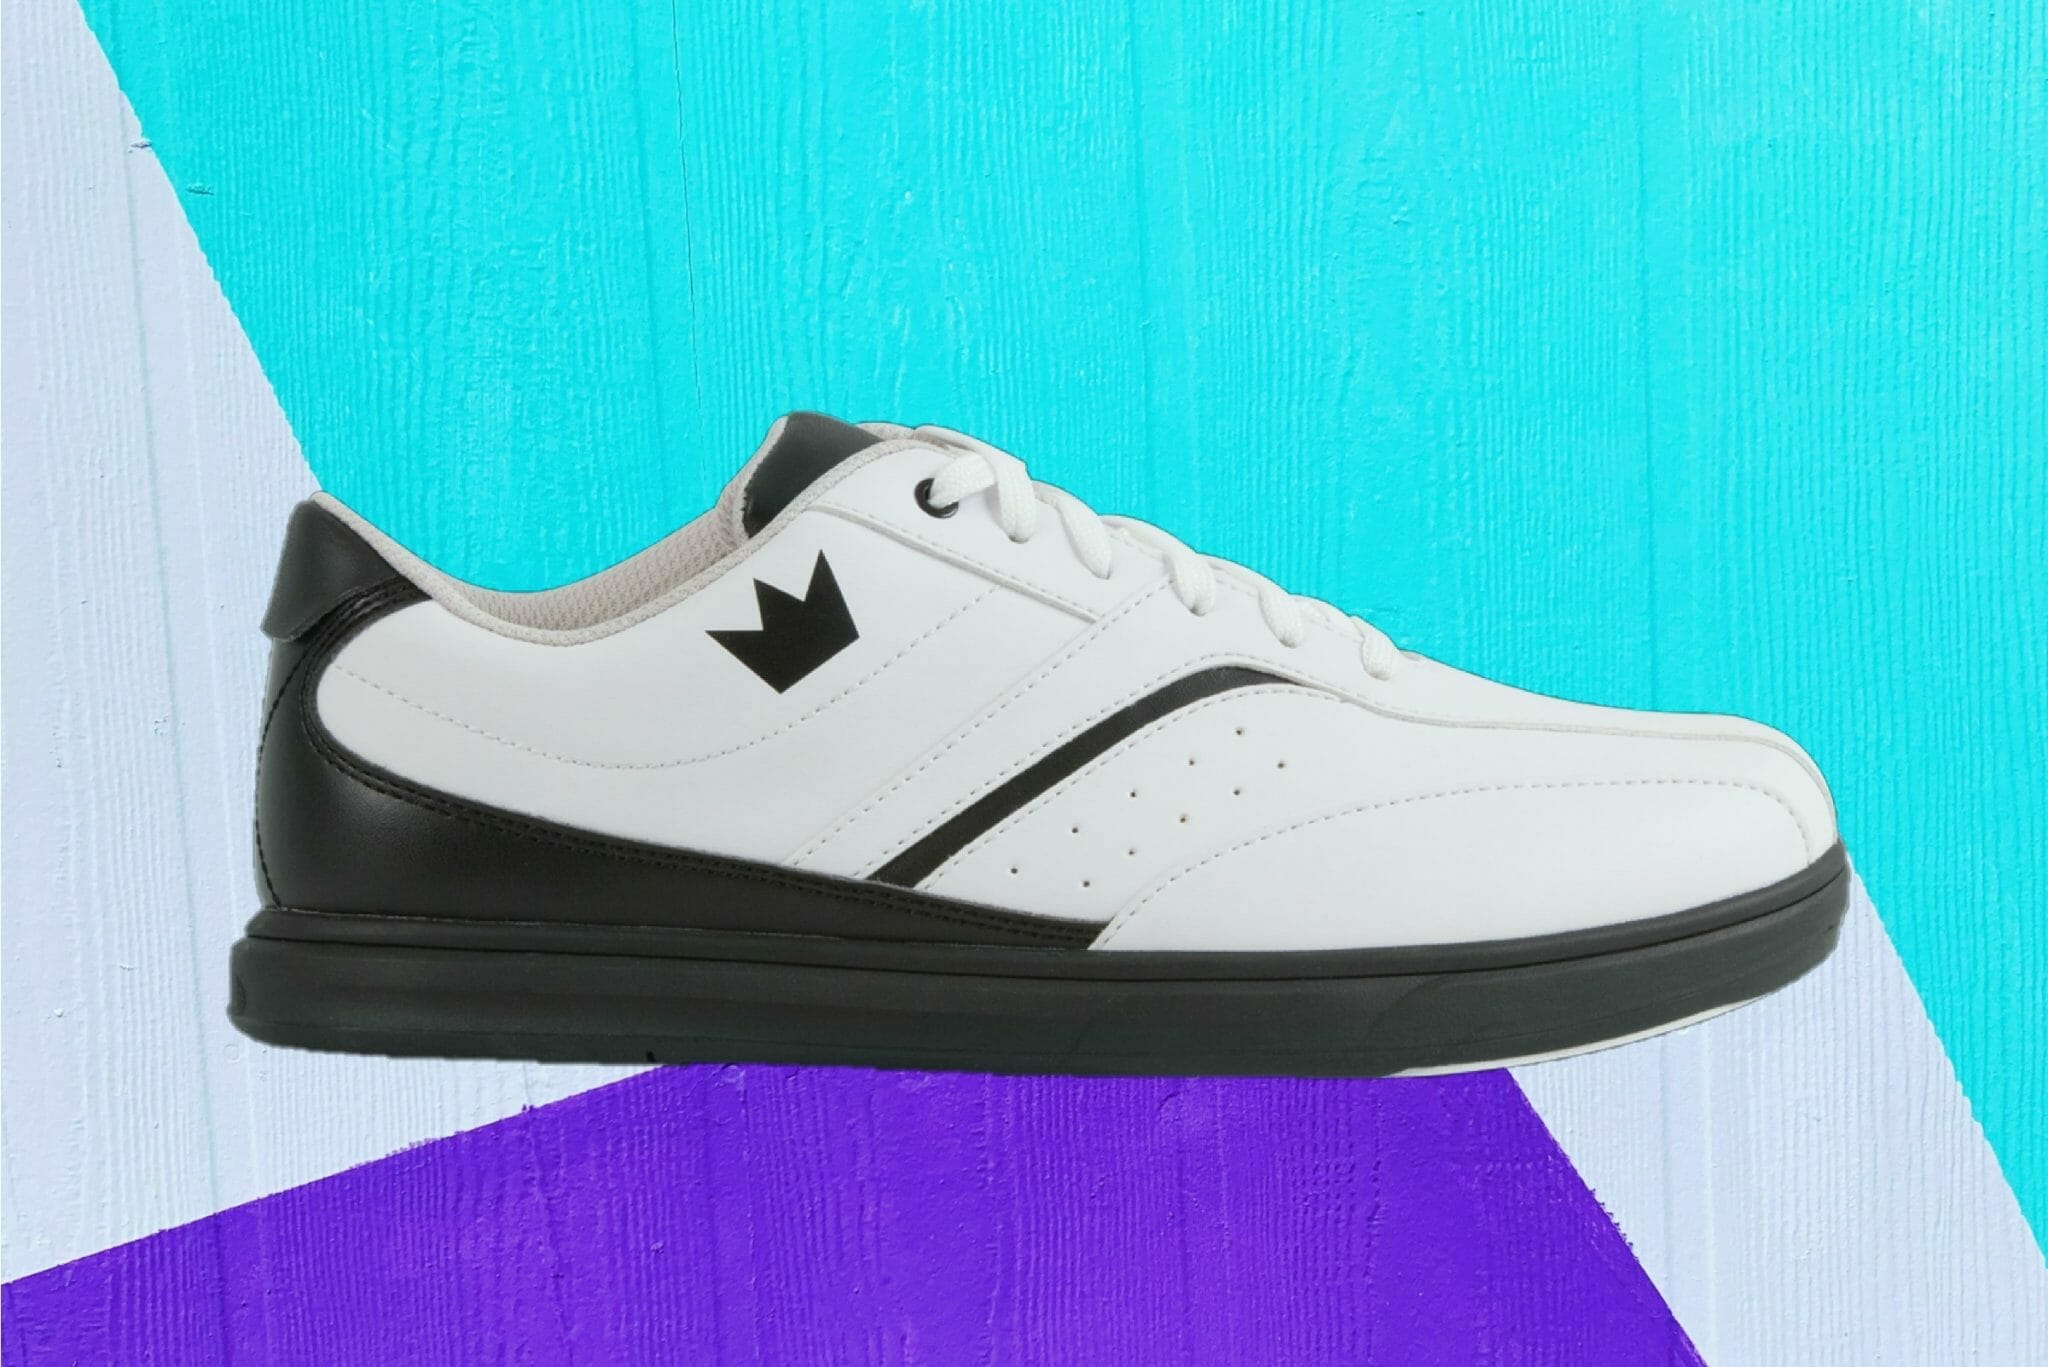 White Bowling Shoe - The Vapor by Brunswick